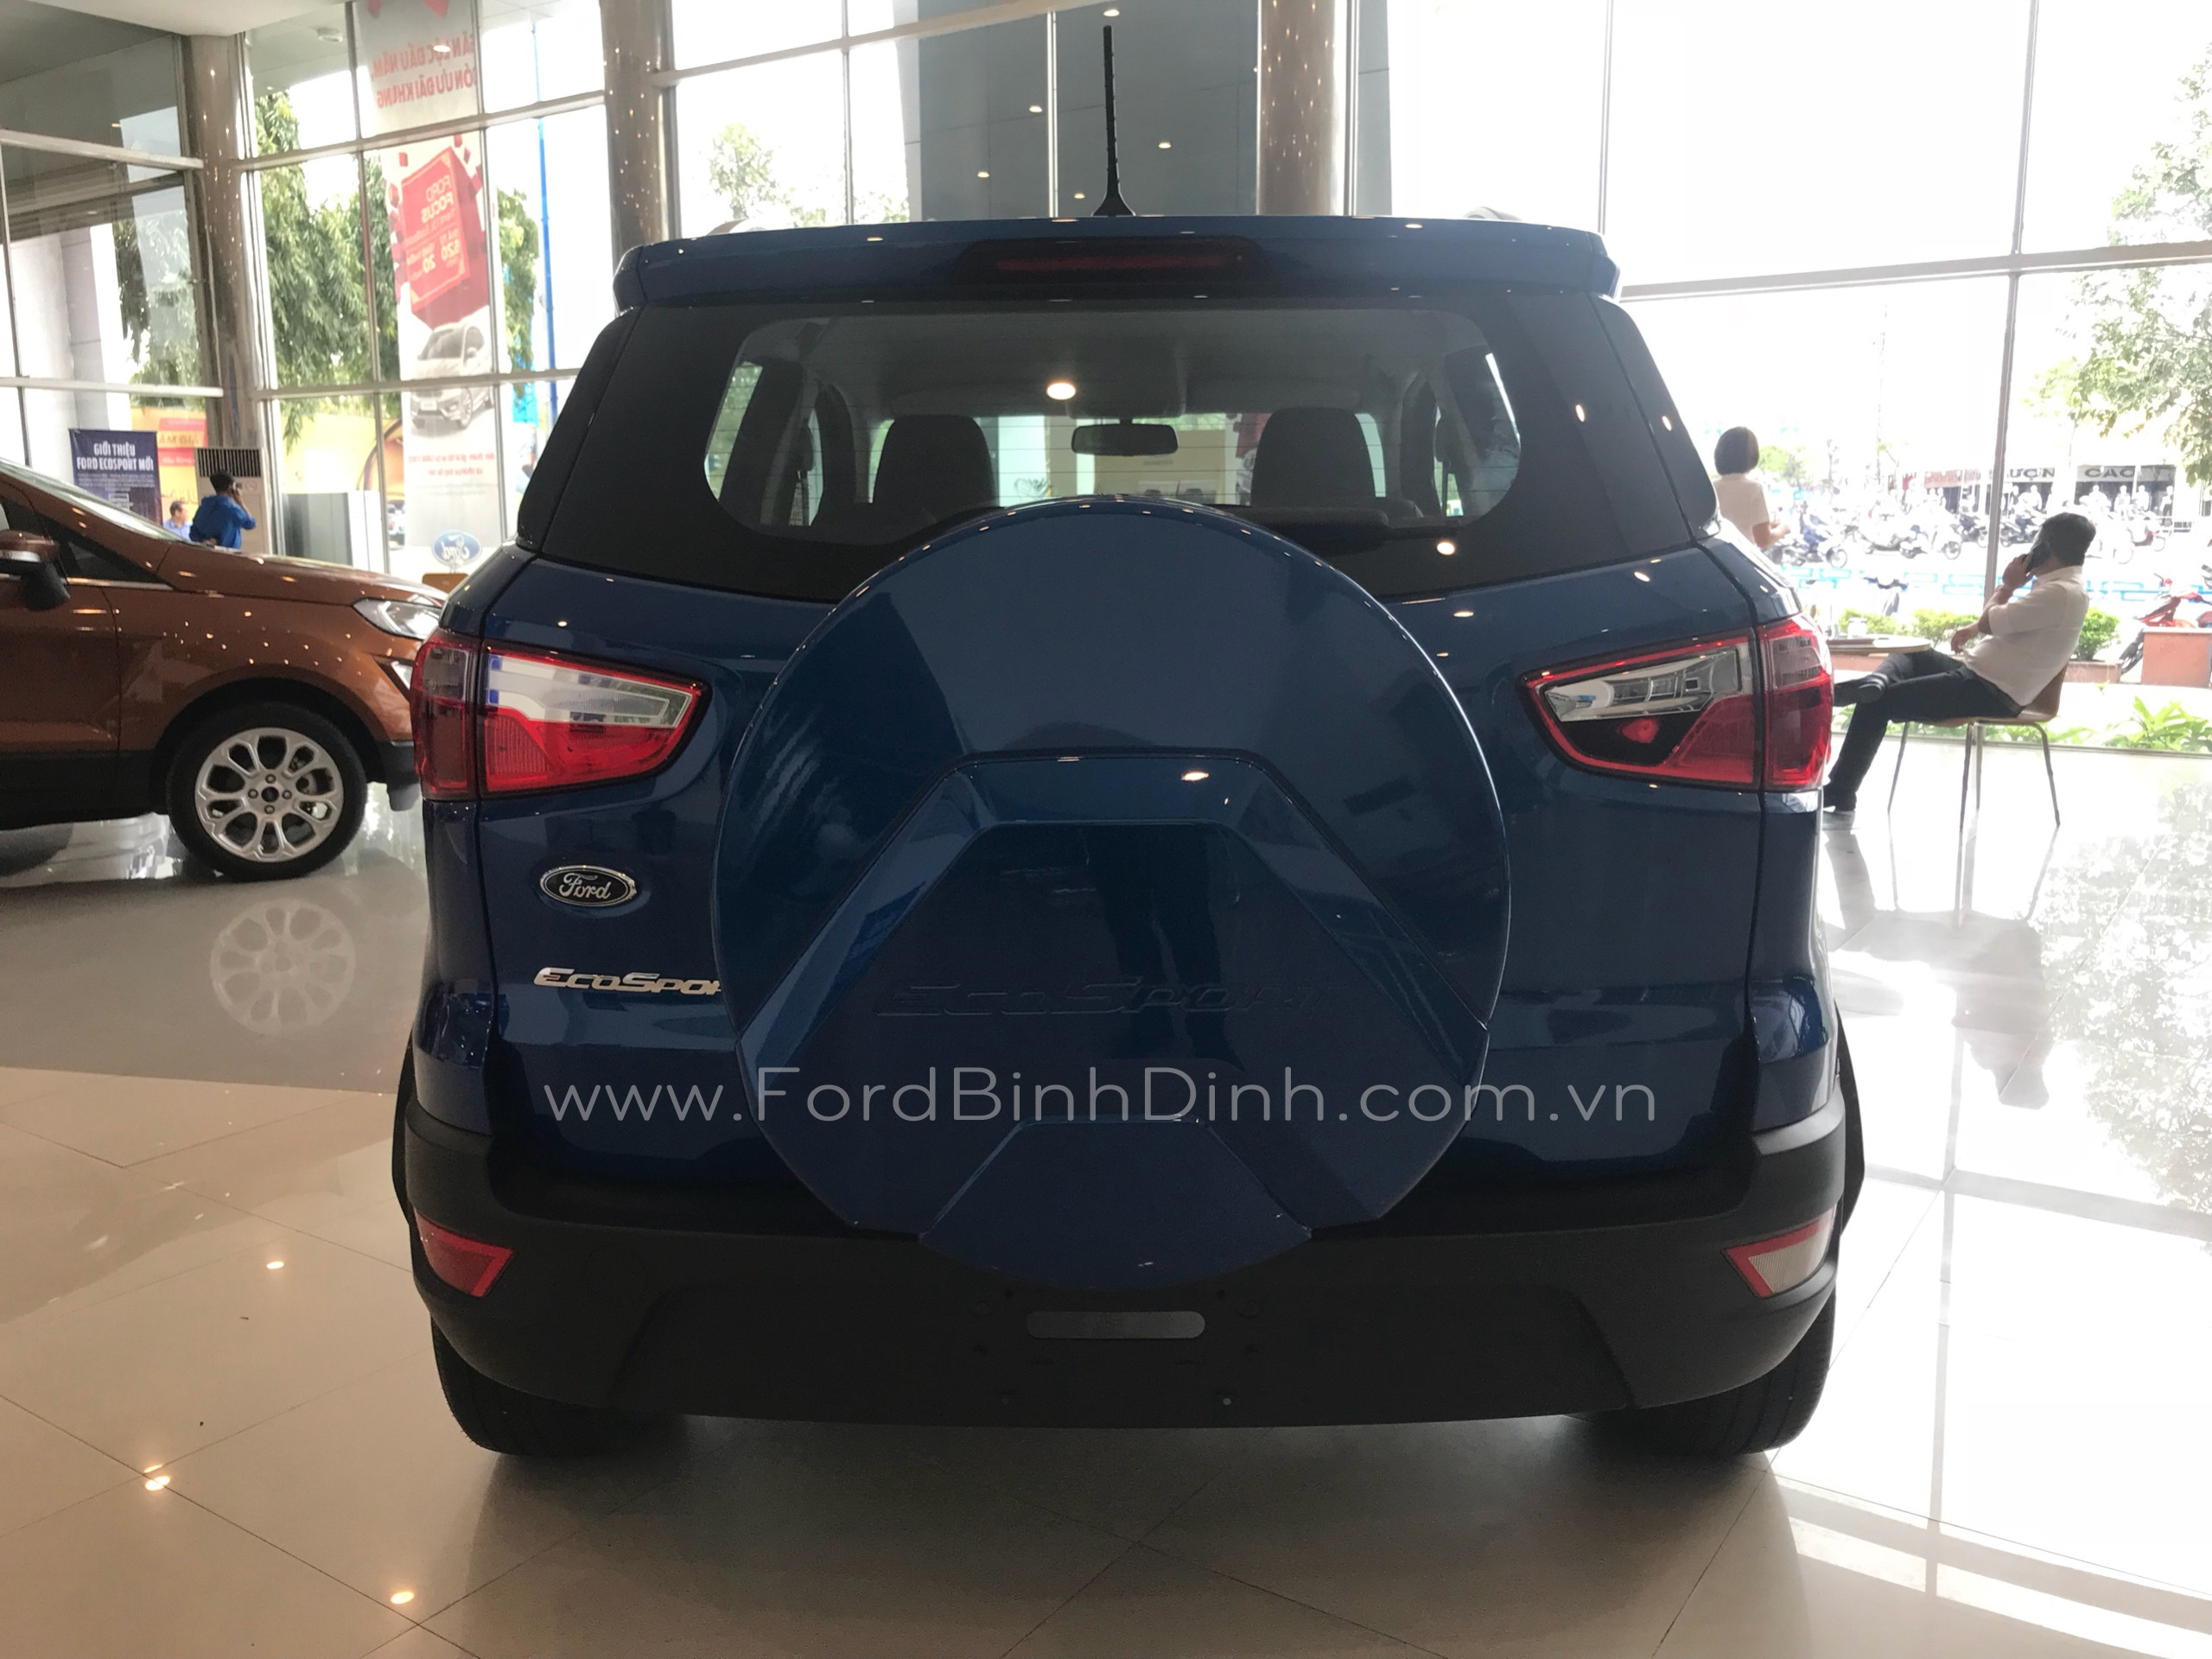 ecosport-2018-trend-at4-ford-binh-dinh-com-vn